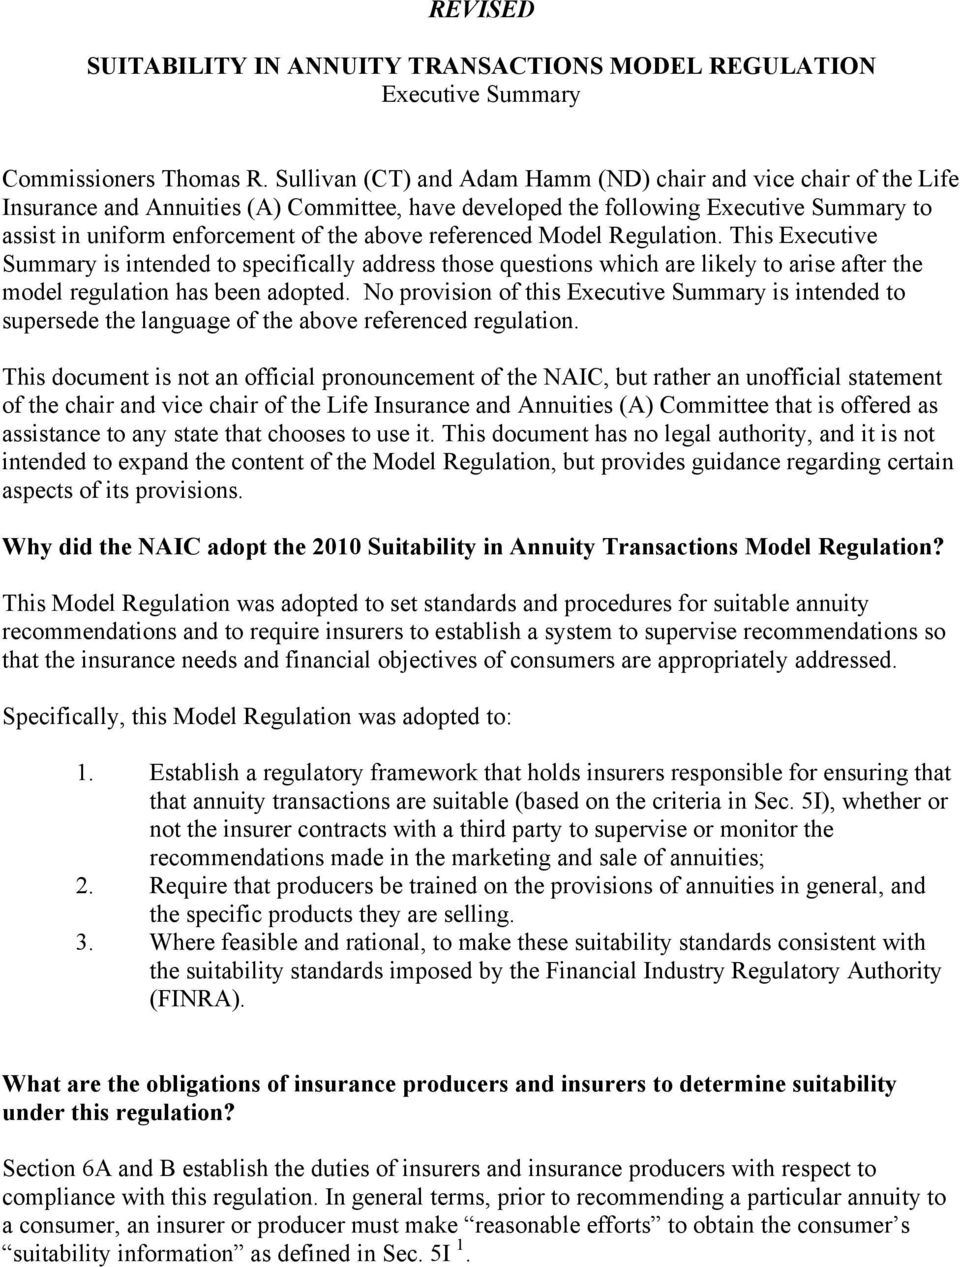 referenced Model Regulation. This Executive Summary is intended to specifically address those questions which are likely to arise after the model regulation has been adopted.